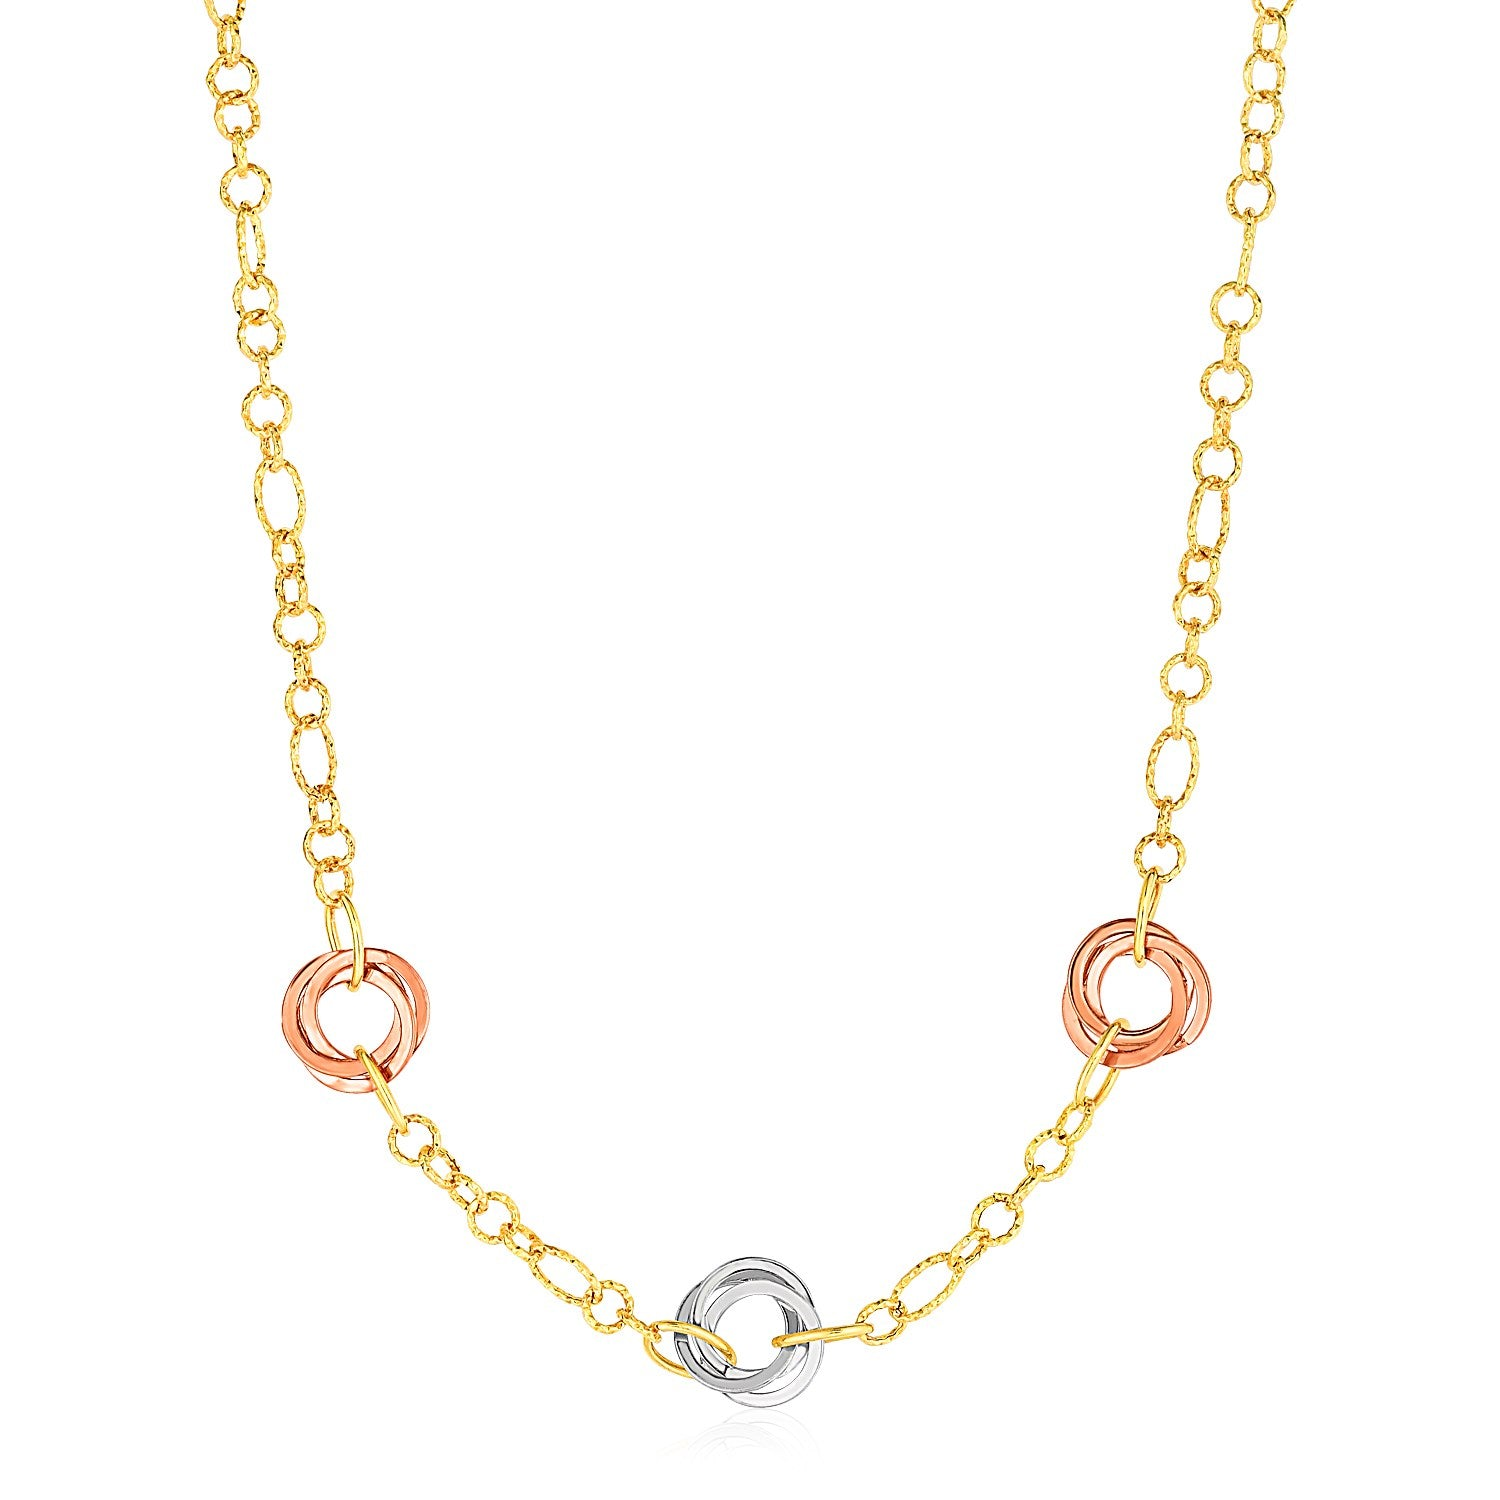 Necklace with Interlocking Rings in 14K Tri Color Gold